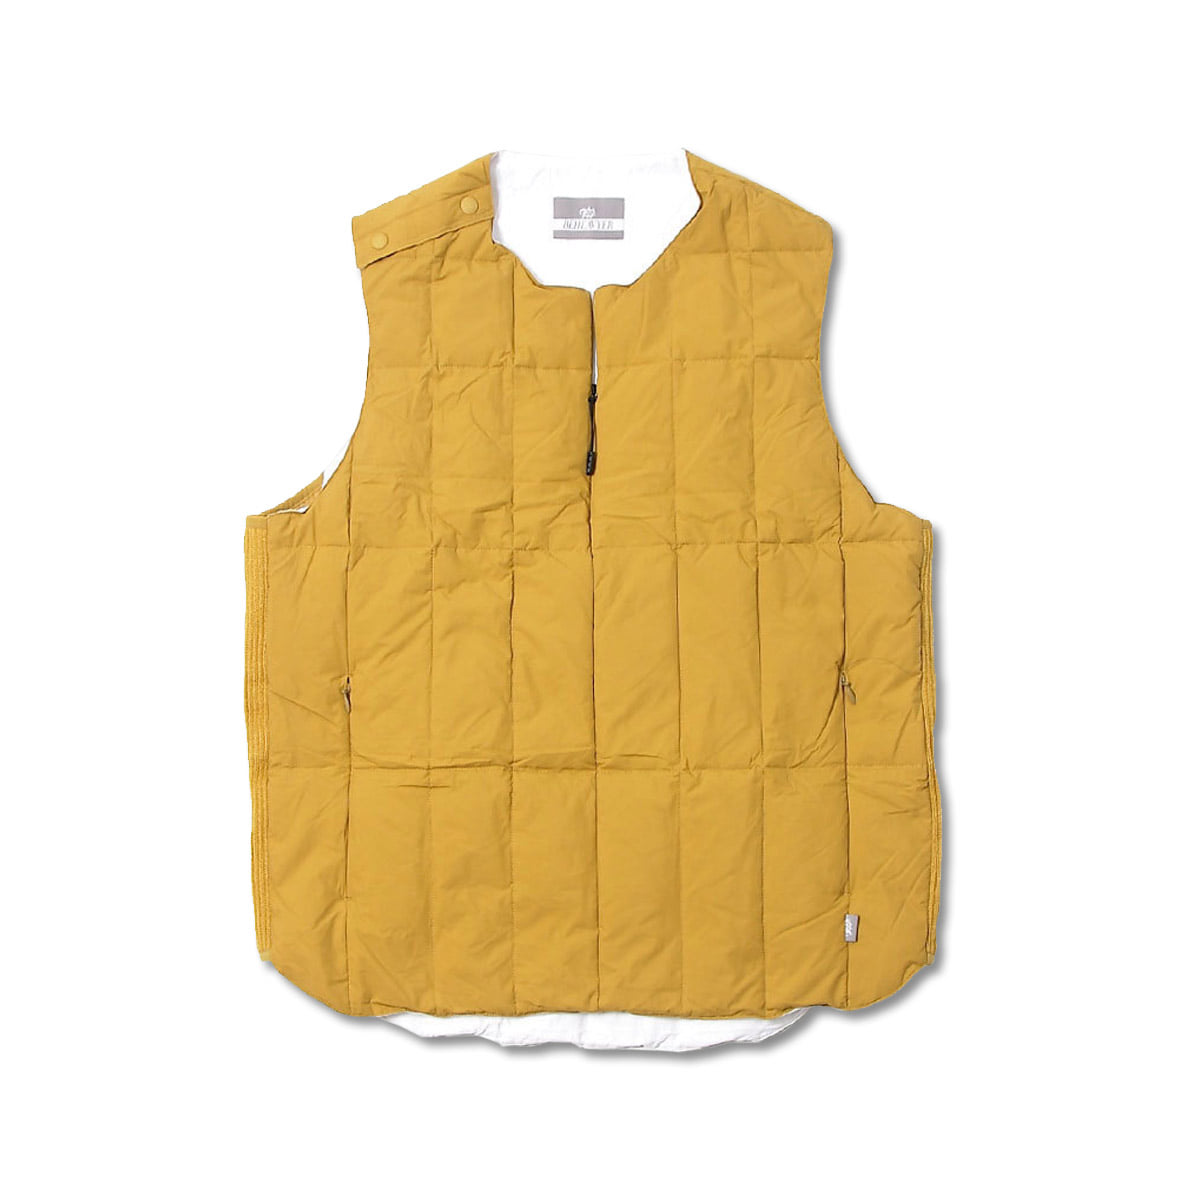 [BEHEAVYER] PACKING VEST 'MUSTARD'